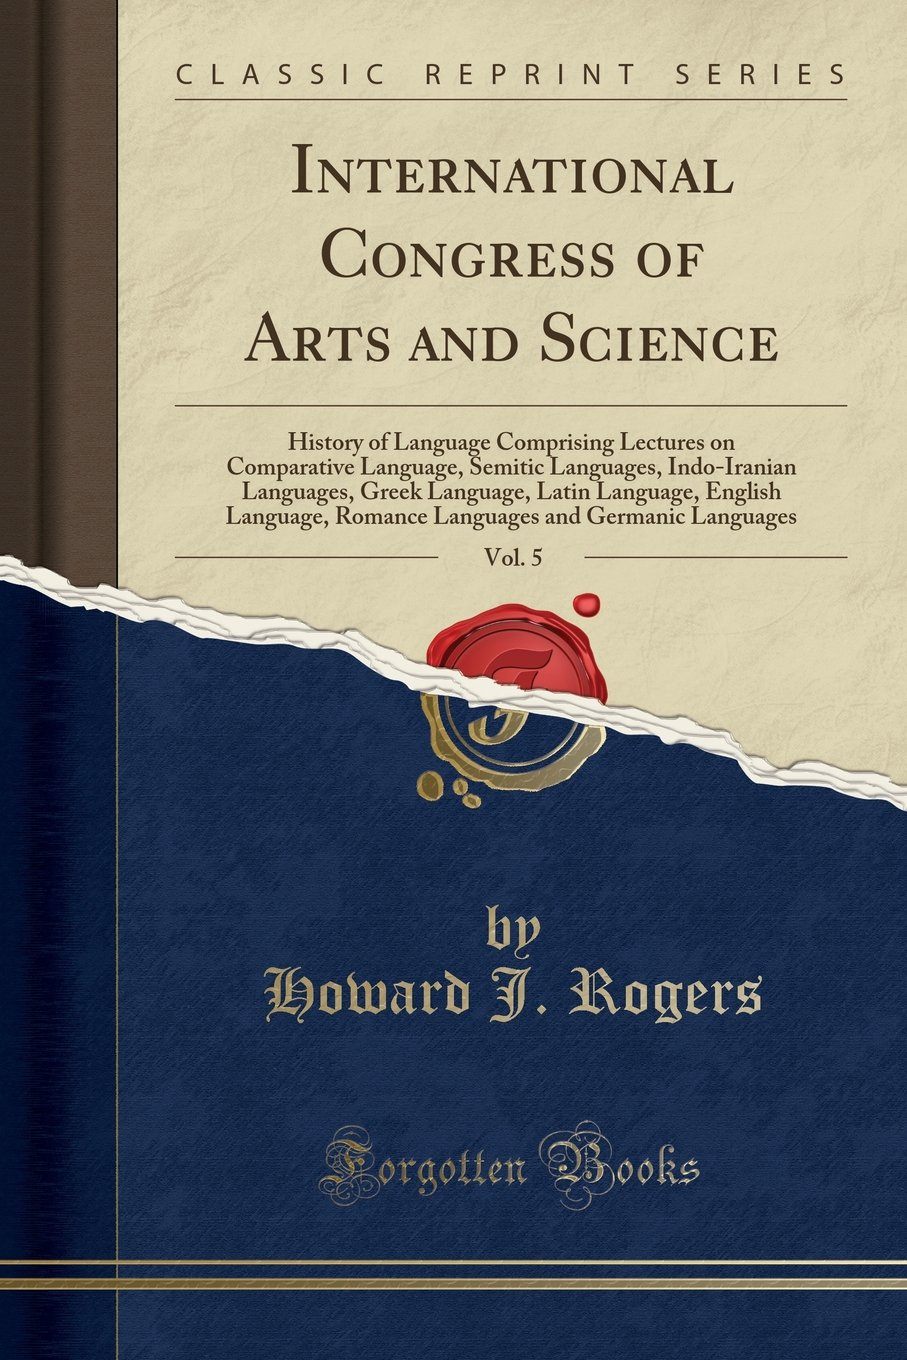 International Congress of Arts and Science, Vol. 5: History of Language Comprising Lectures on Comparative Language, Semitic Languages, Indo-Iranian ... Romance Languages and Germanic Languages